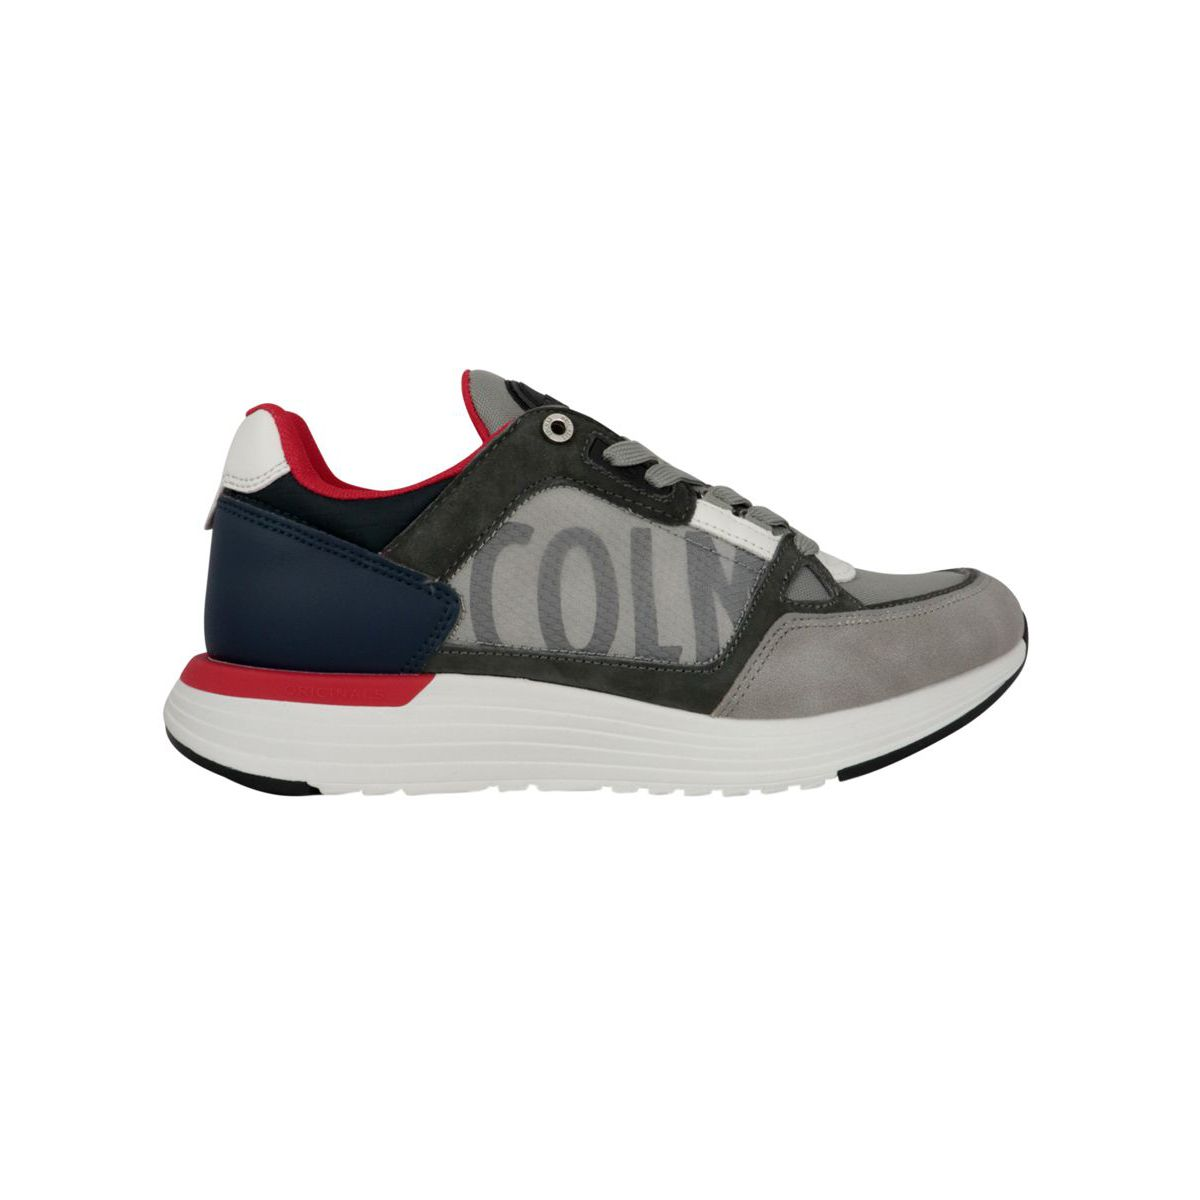 Supreme kick sneakers Gray / navy Colmar Shoes